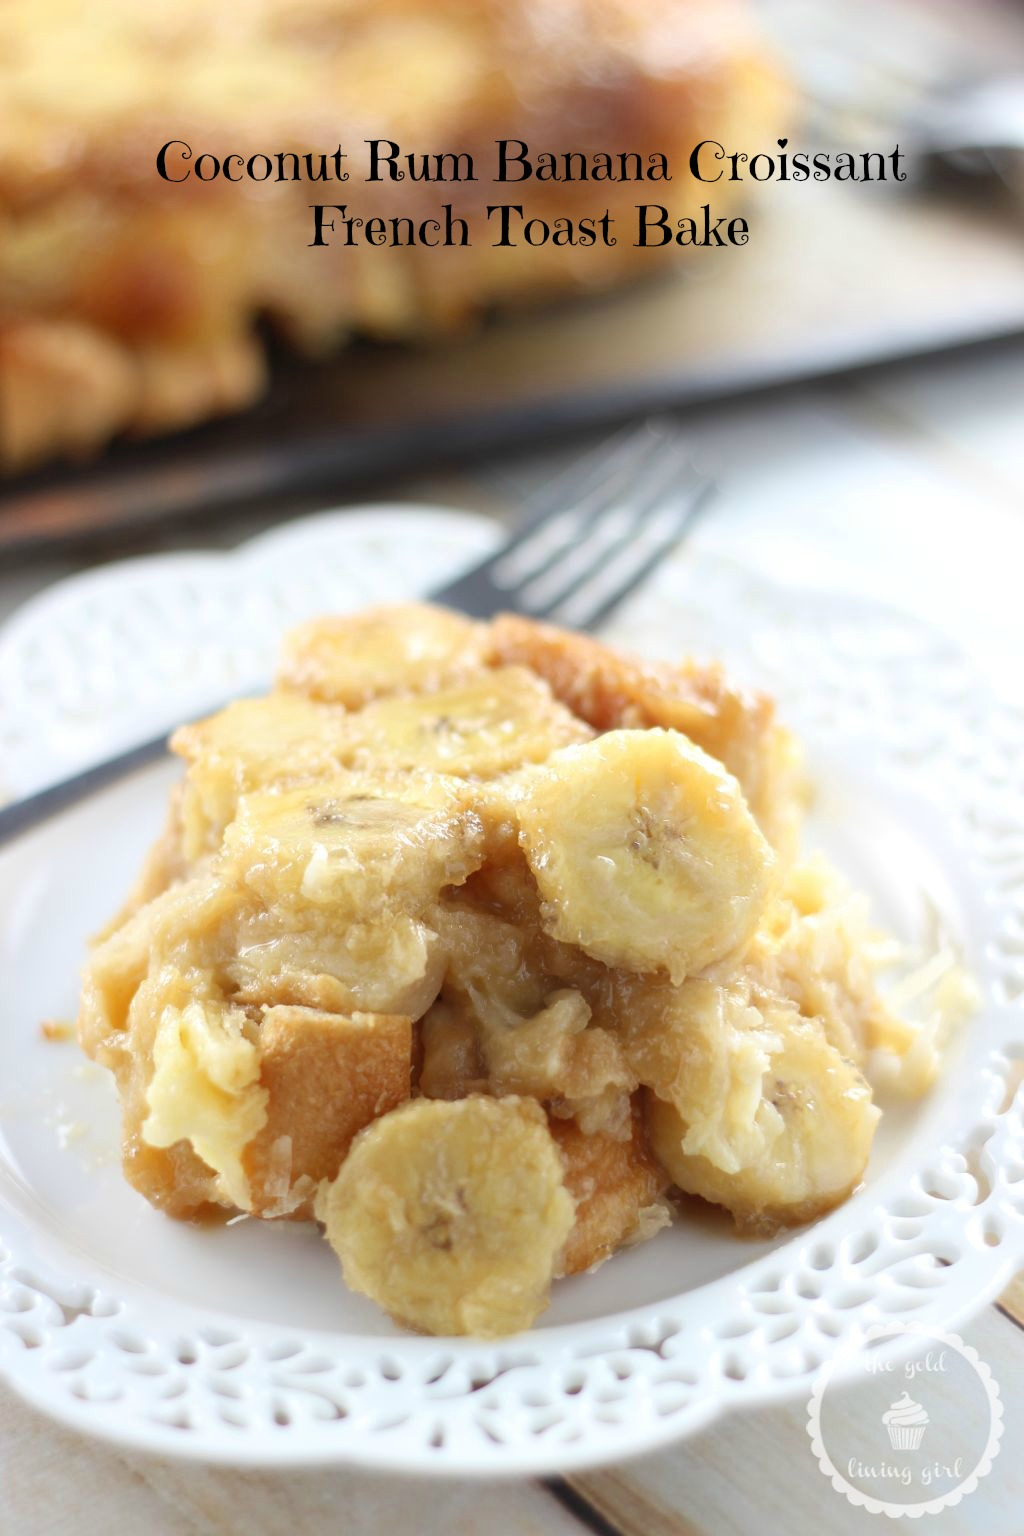 Coconut Rum Banana Upside Down Croissant French Toast Casserole How To Make